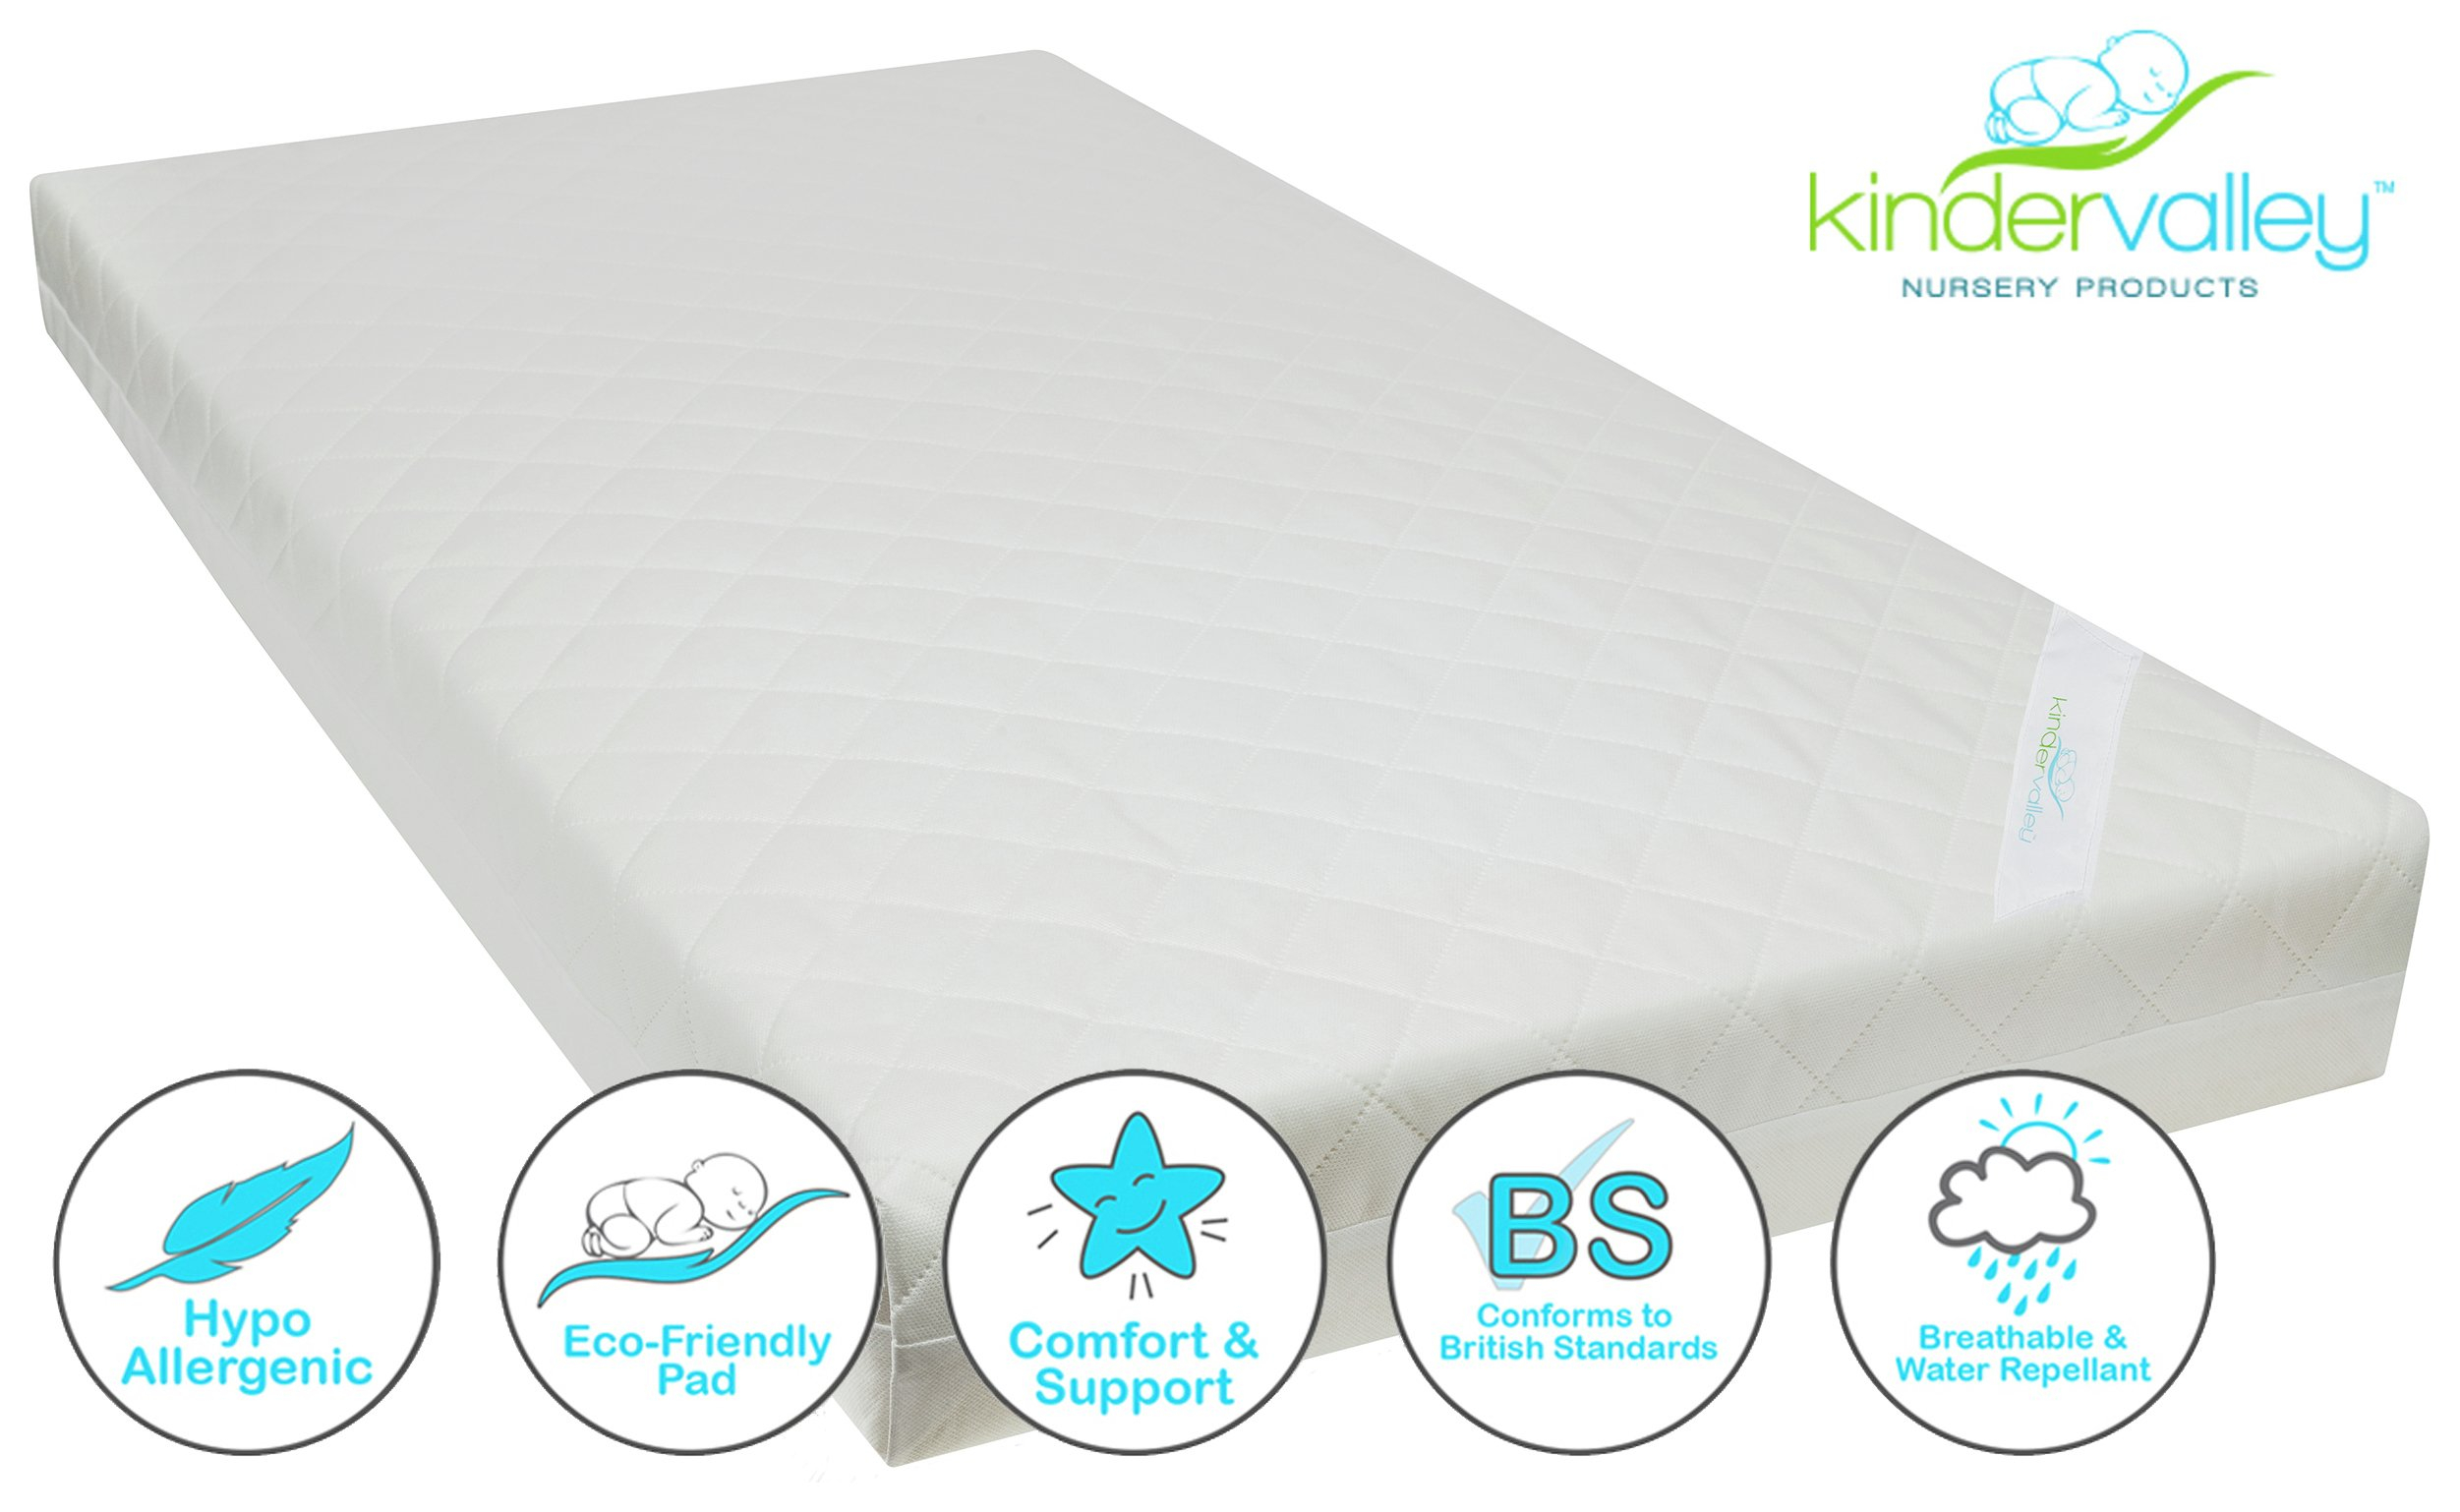 Kinder Valley Deluxe Spring Cot Mattress- 120cmx60cm.